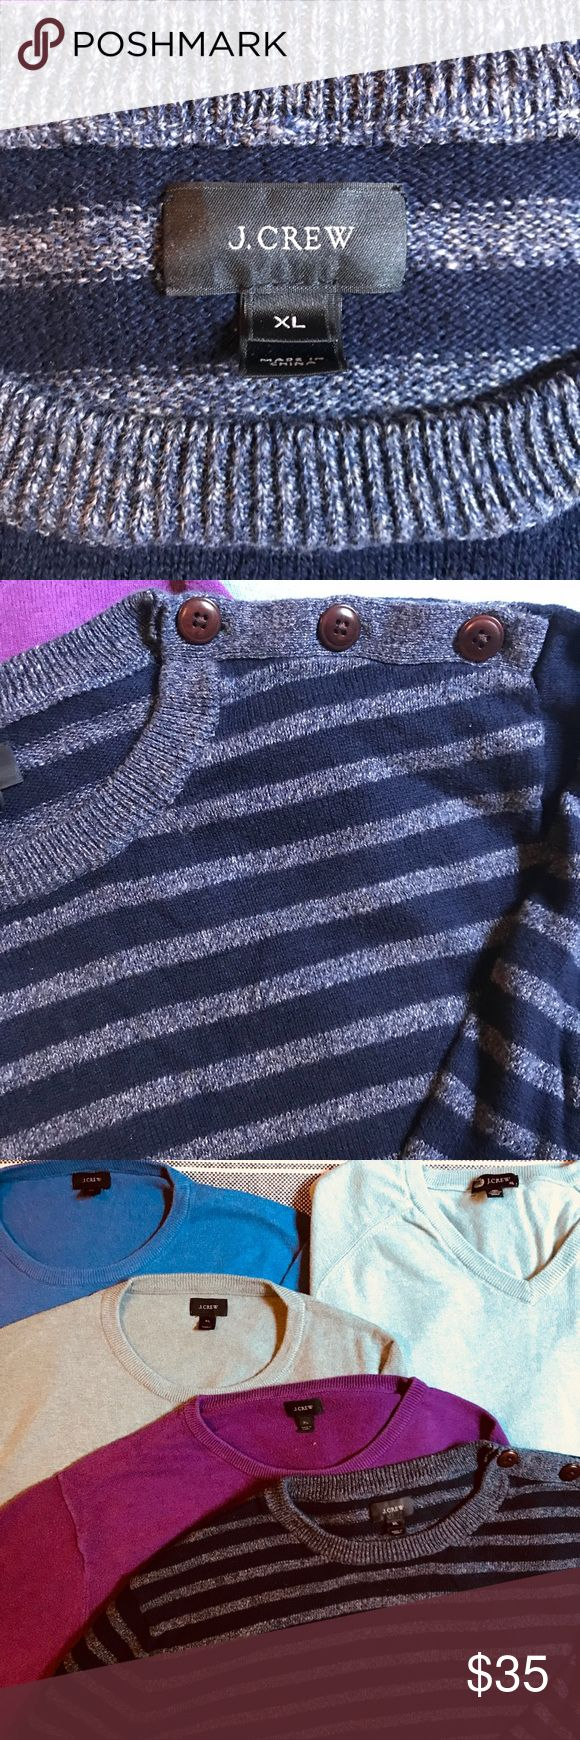 J. Crew Men's Crewneck Sweater (XL) Color: blue and silver stripes. Brown buttons on left shoulder. Sweater Sale! Add this striped sweater to a bundle with one or more J. Crew sweaters to receive a special discount! J. Crew Sweaters Crewneck